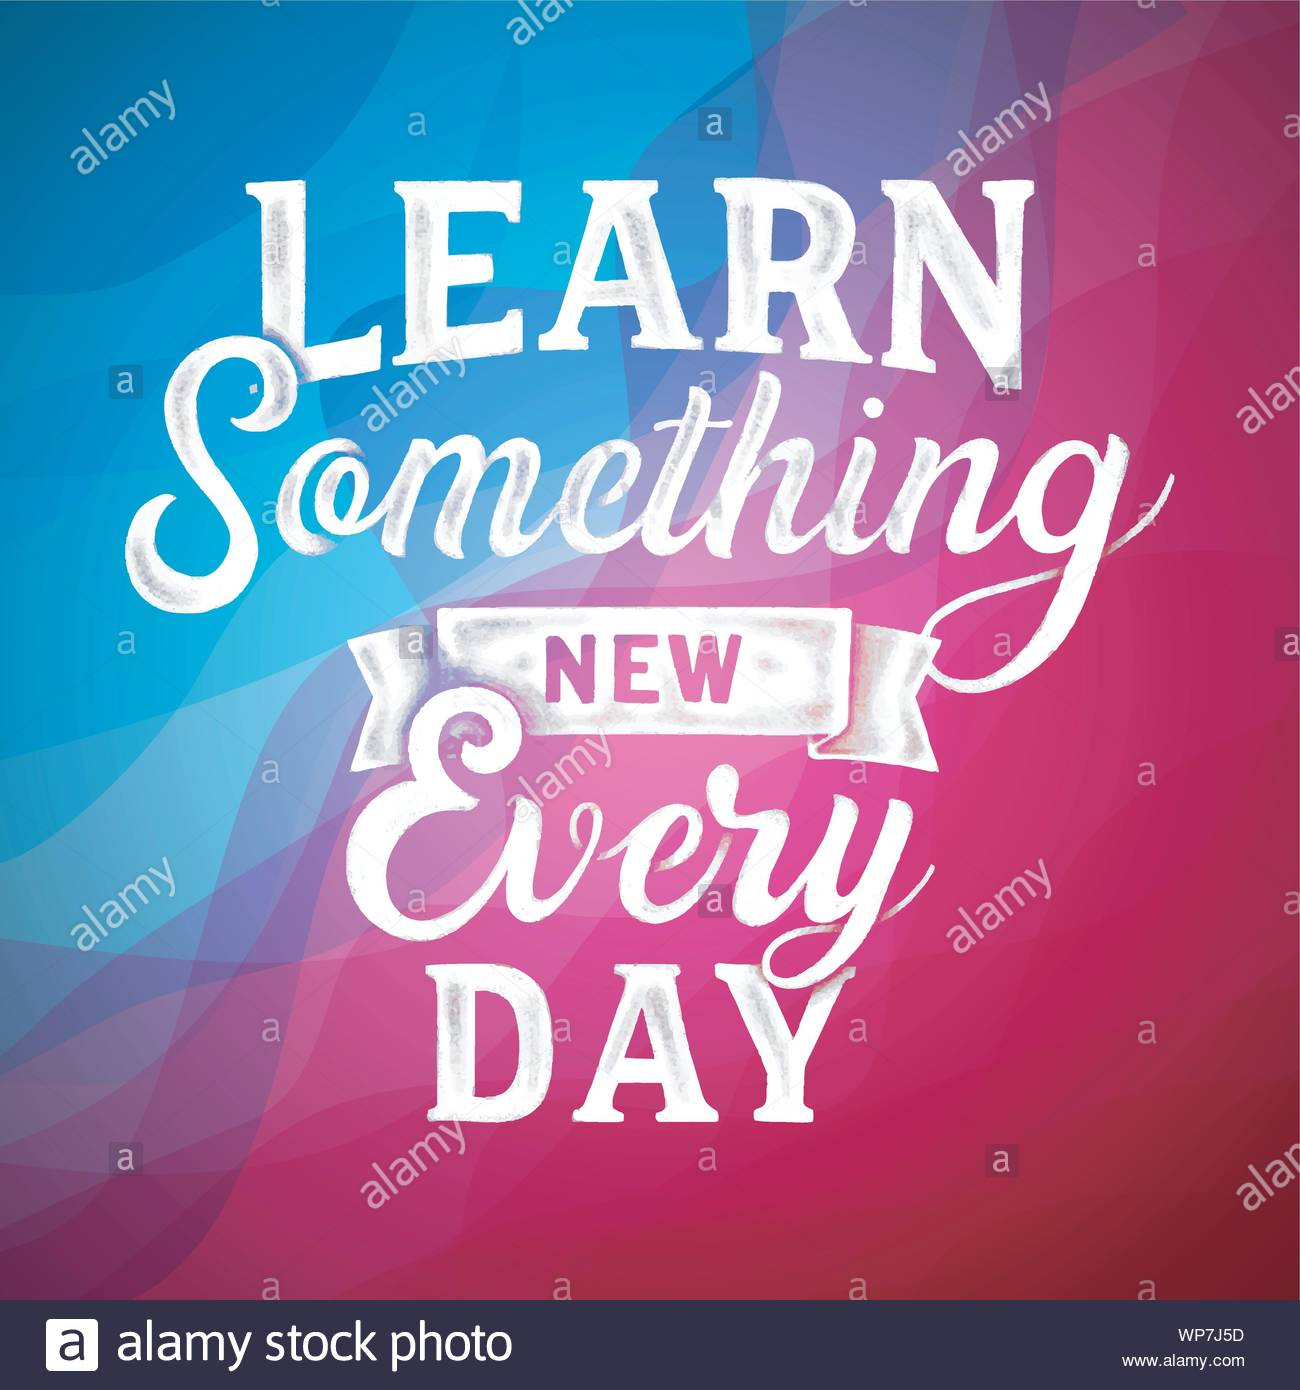 Learn Something New Everyday Inspirational Quotes And Motivational Art Lettering Composition Vector With Beautiful Abstract Background Stock Vector Image Art Alamy